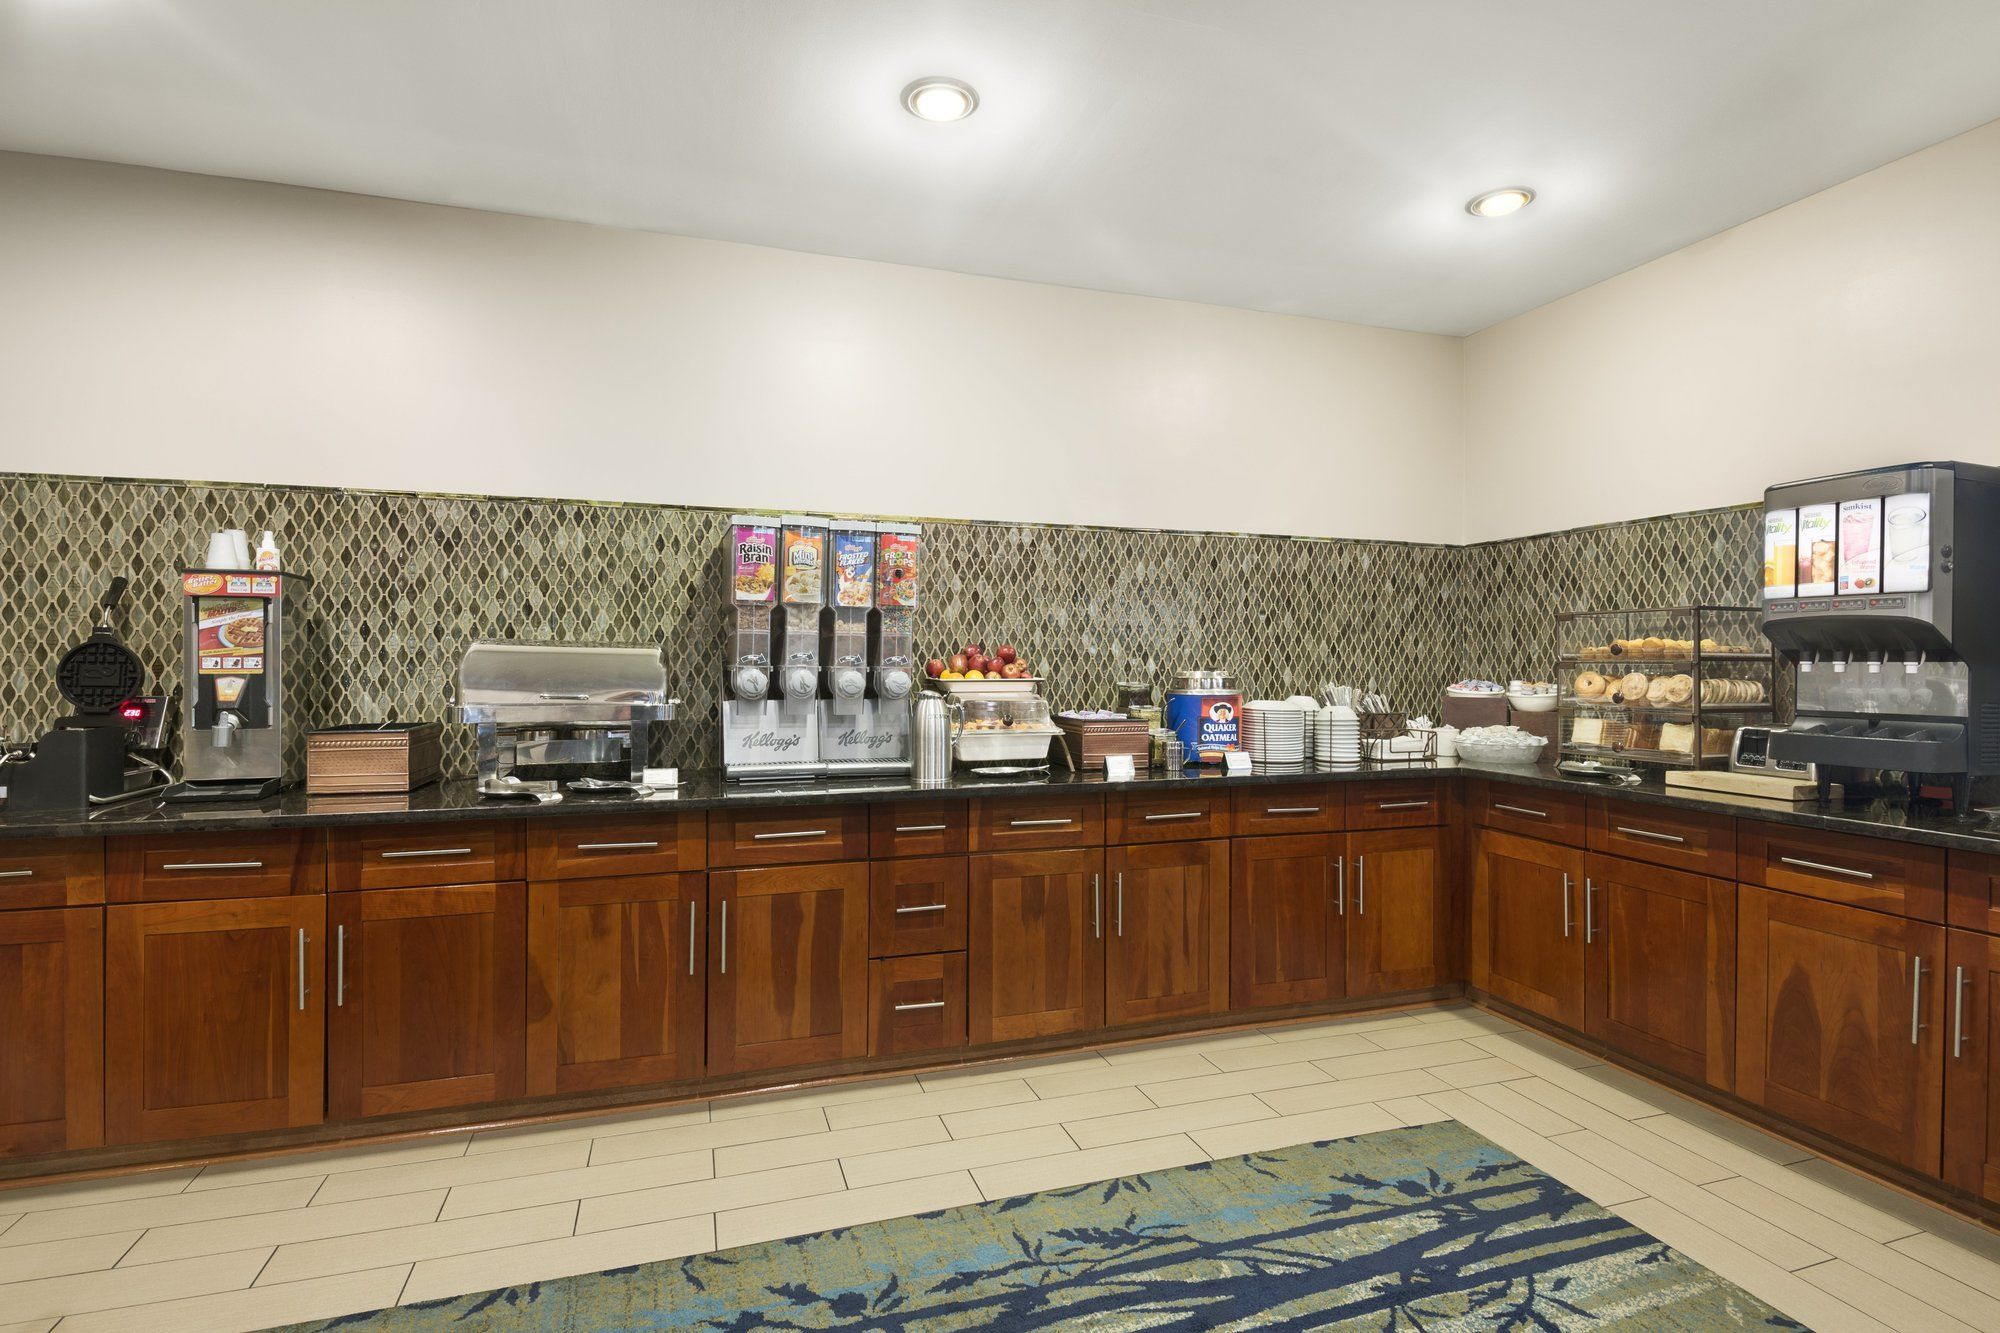 Country Inn & Suites by Carlson Washington Dulles Airport